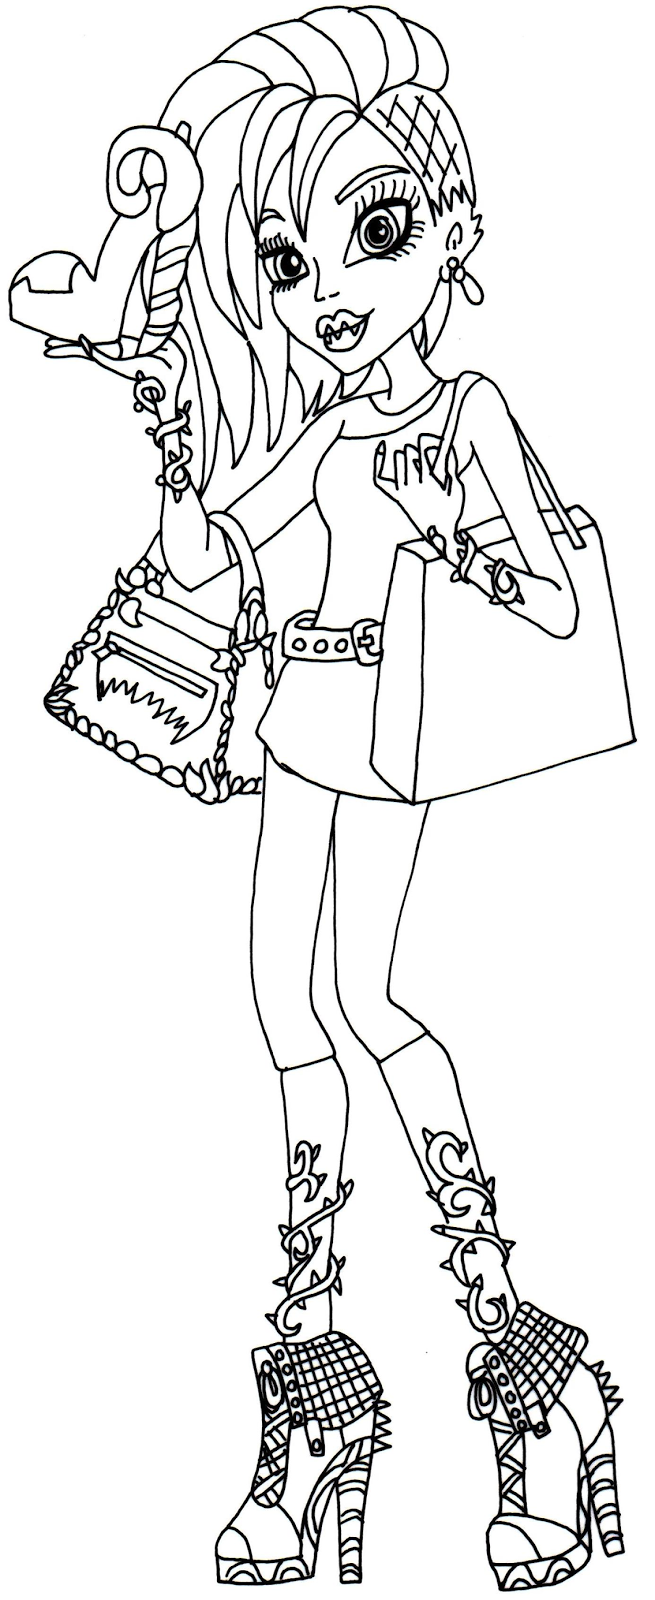 Free printable monster high coloring pages april 2014 for Monster high free coloring pages